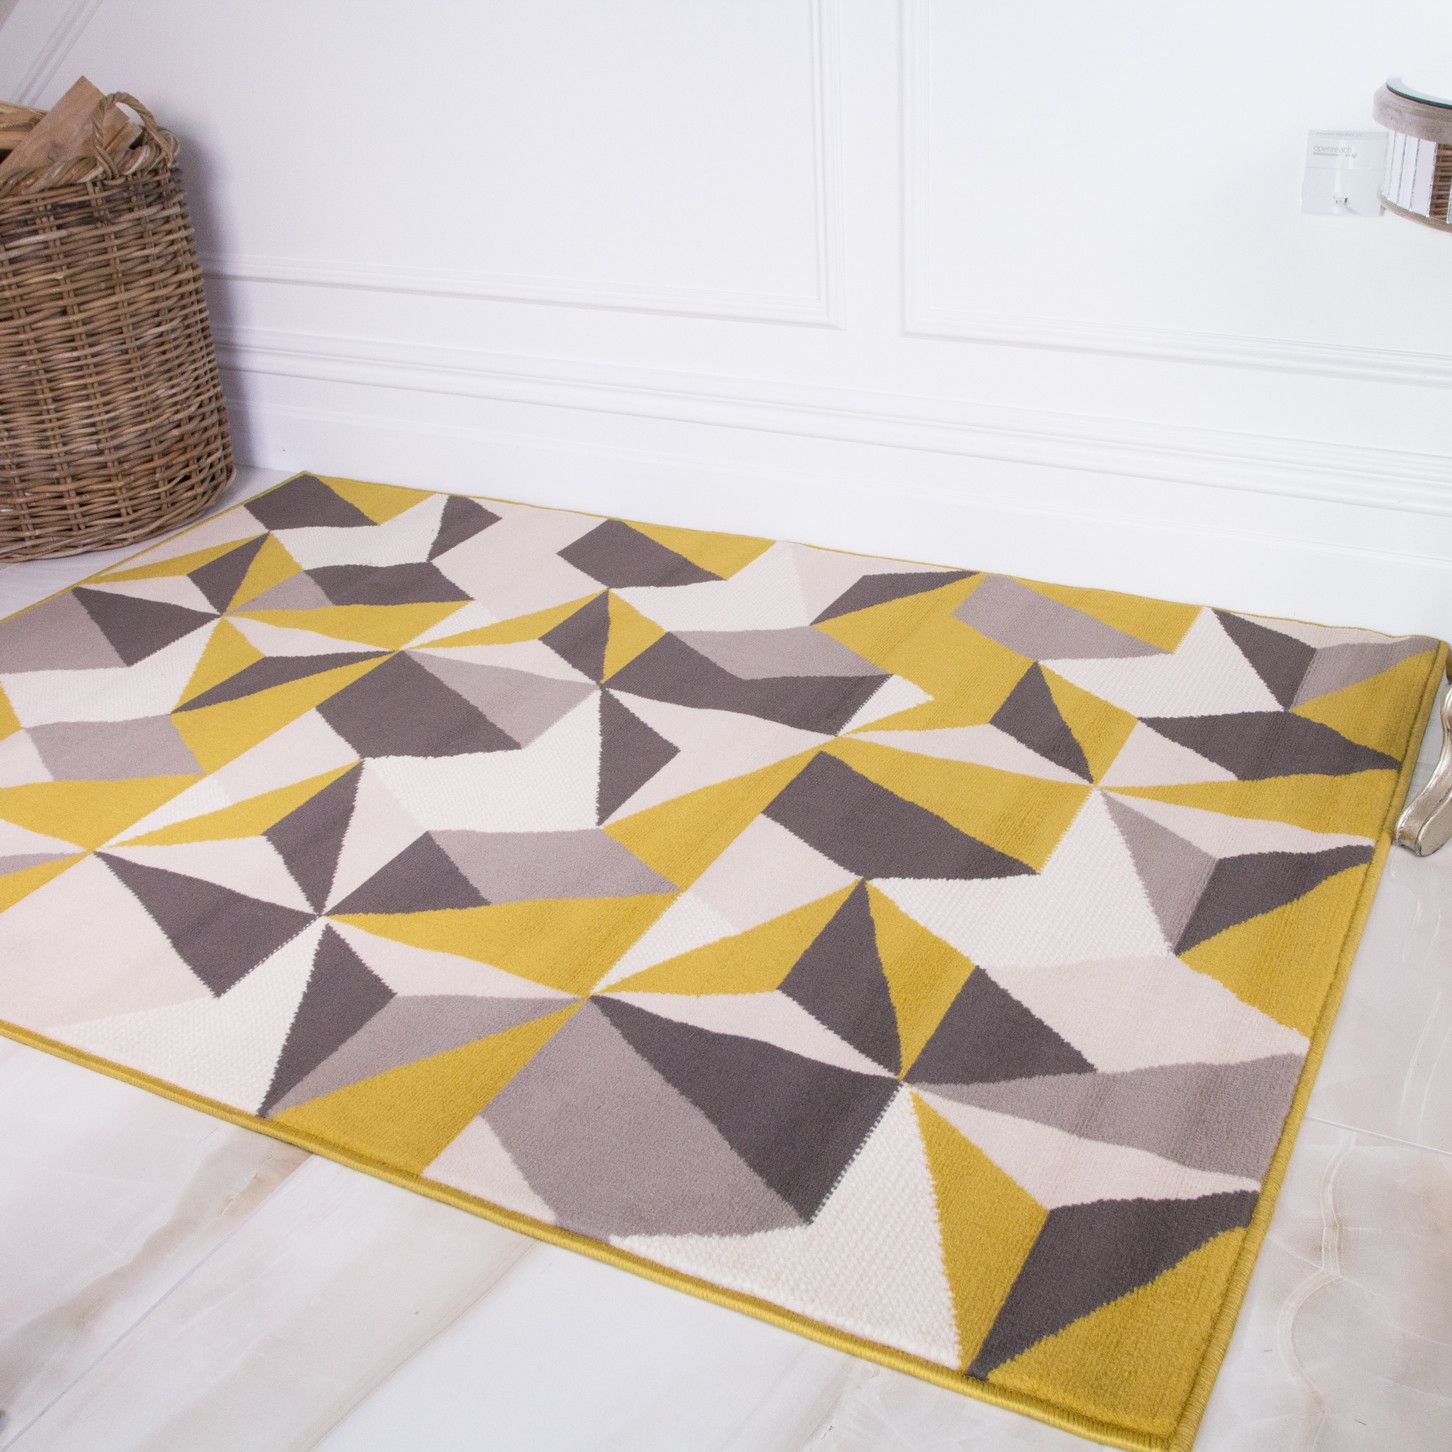 Pin By Nina Stokhuyzen On Interieur In 2020 Black And Grey Rugs Geometric Area Rug Geometric Rug